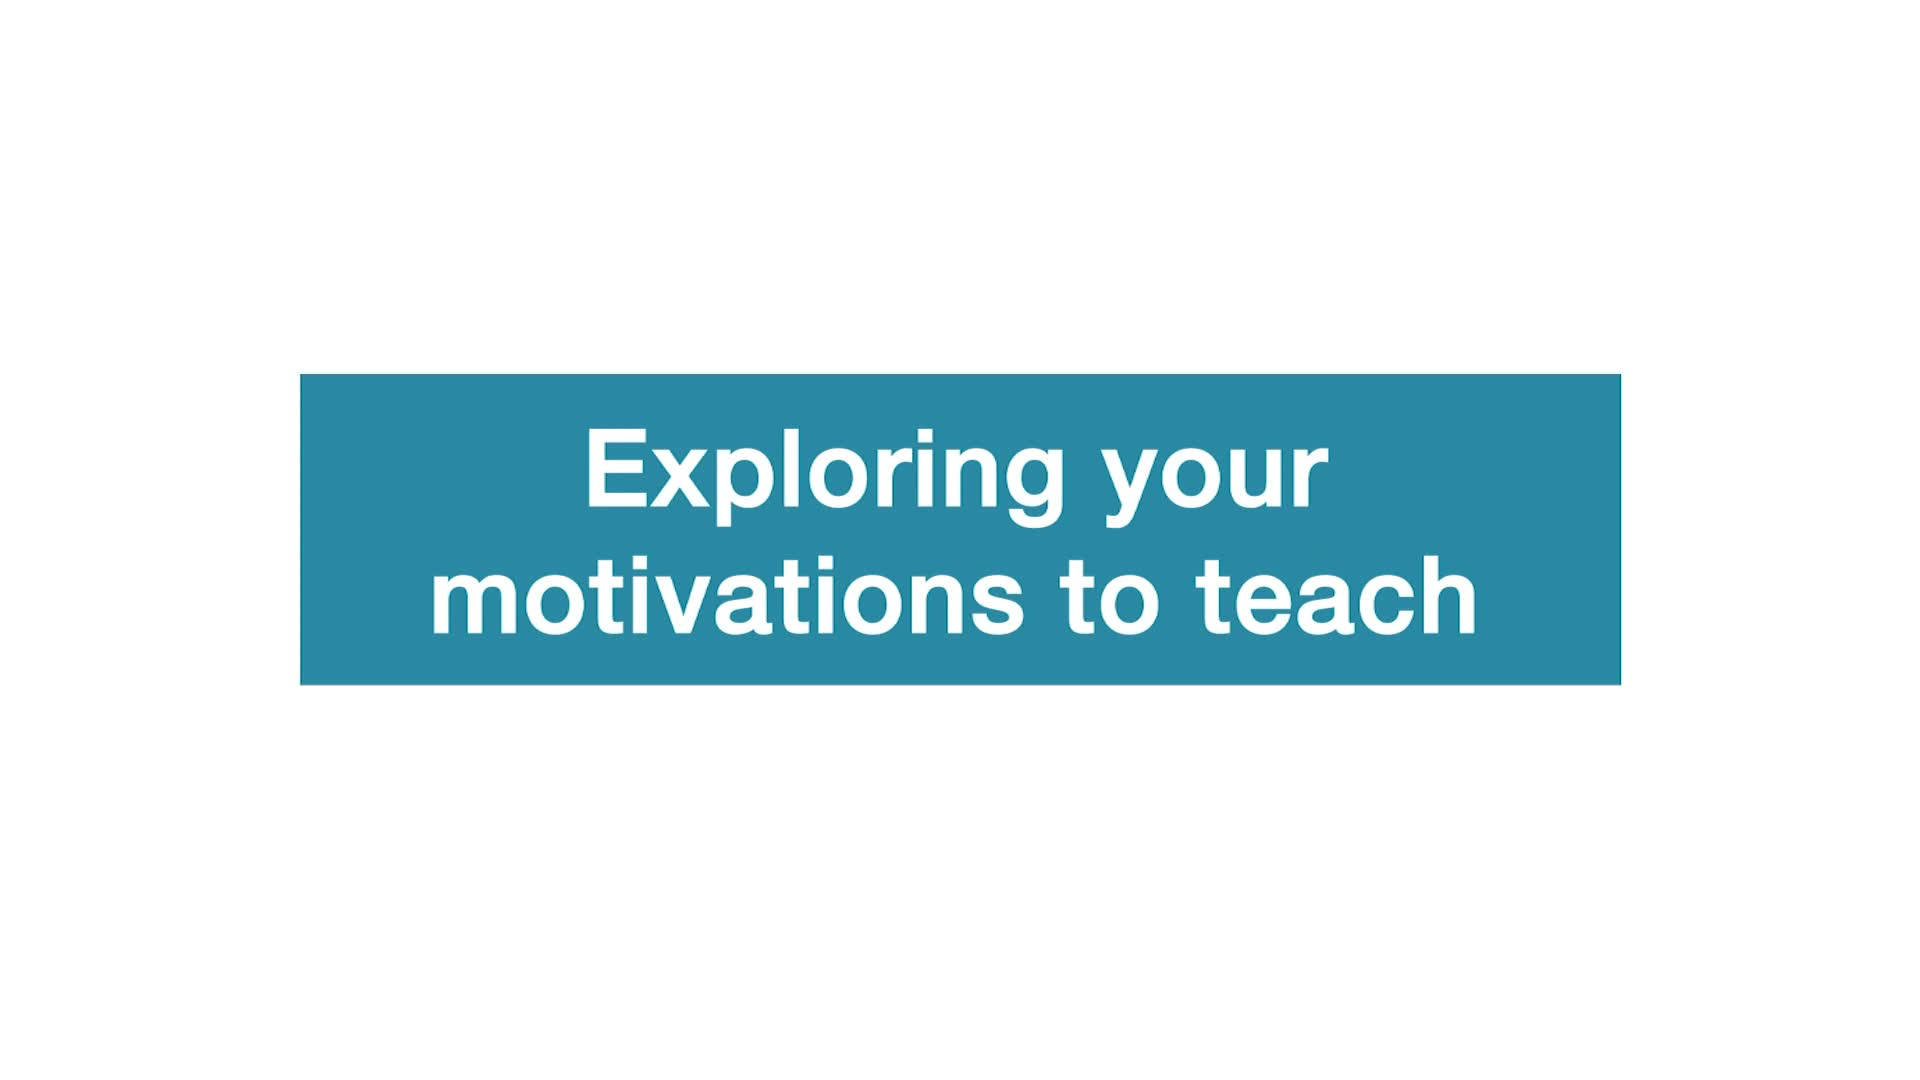 Early motivations for considering teaching